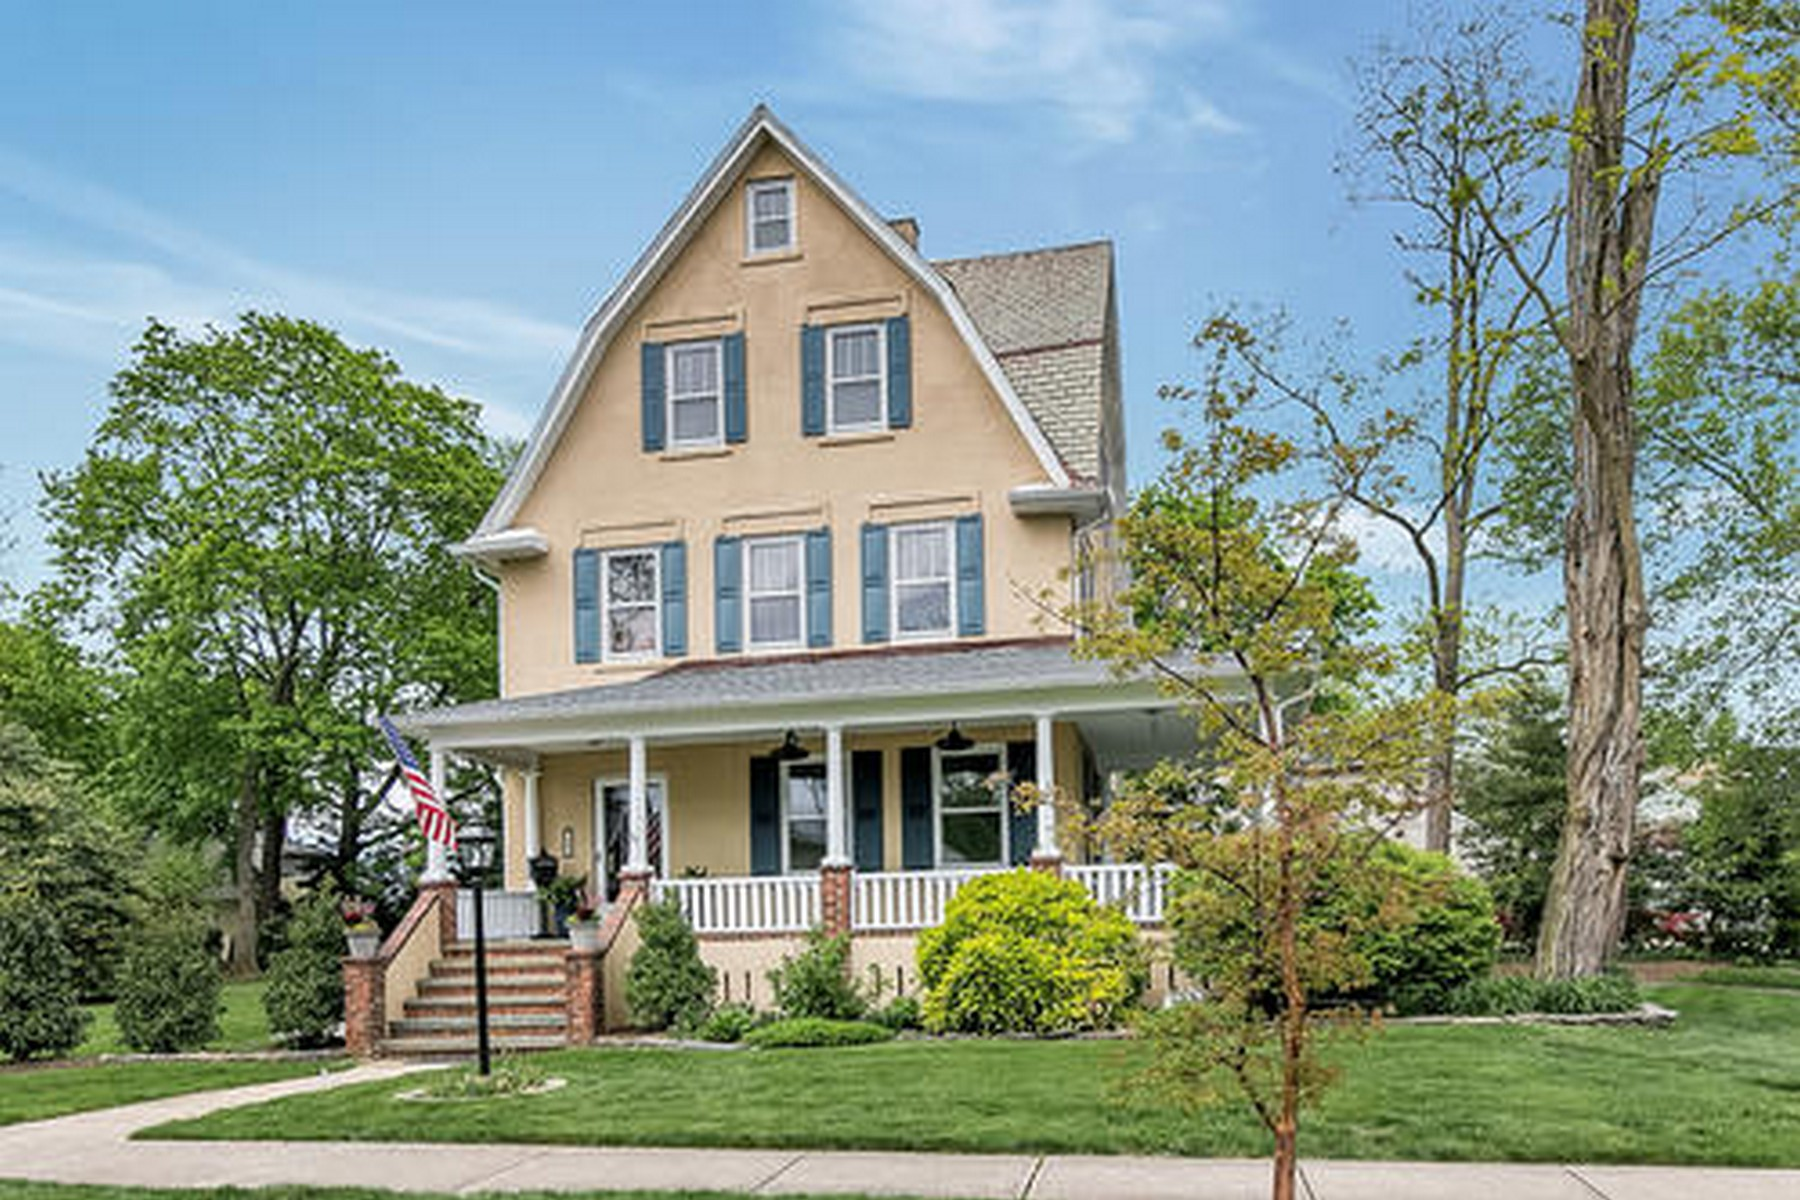 Single Family Homes for Sale at Old World Charm 66 South Ave Atlantic Highlands, New Jersey 07716 United States